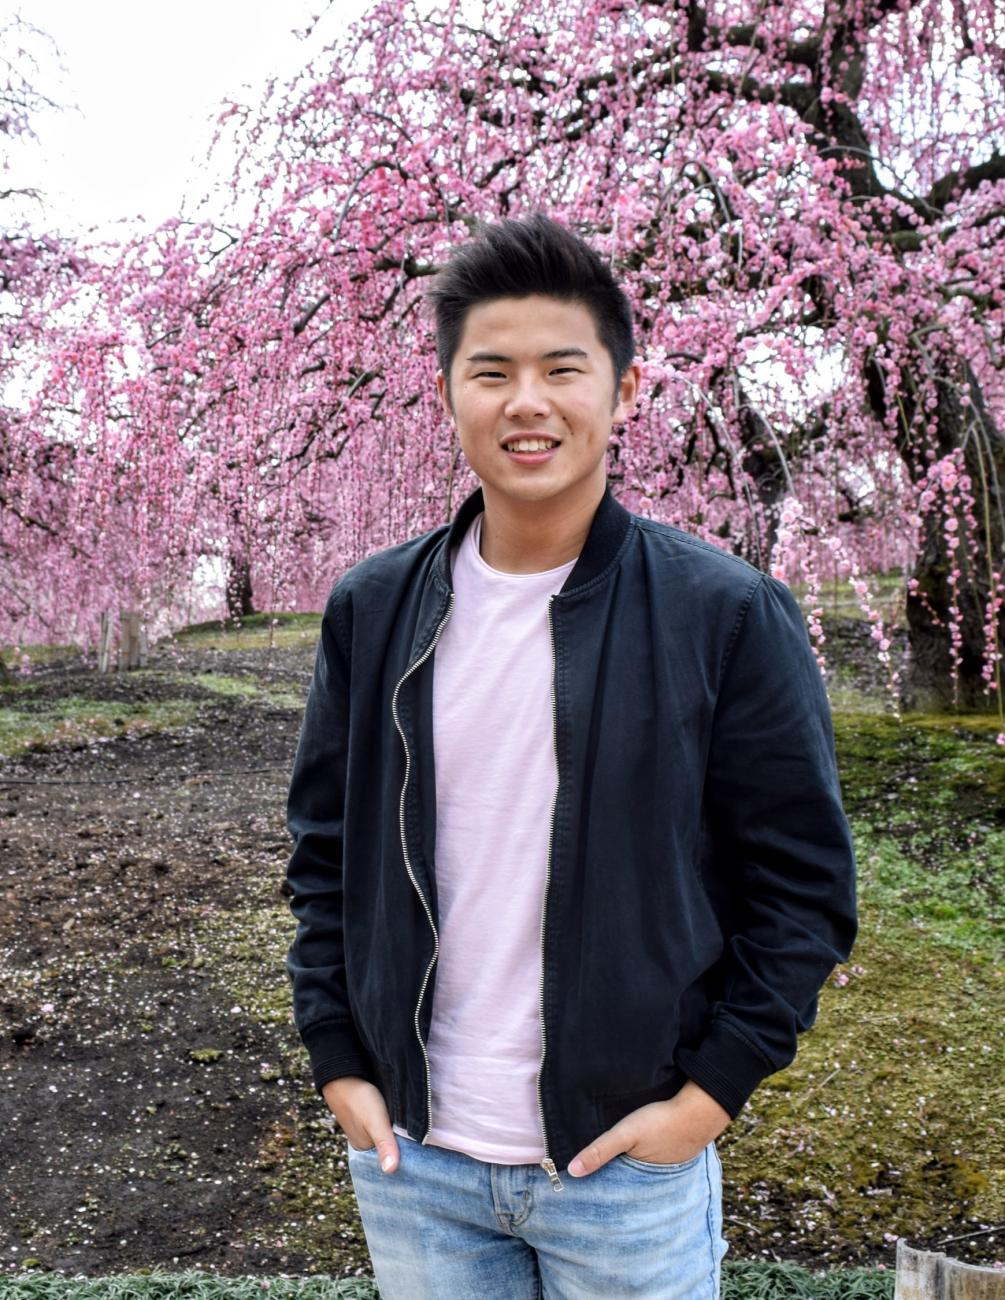 Brandon Tran in front of blossoming cherry trees